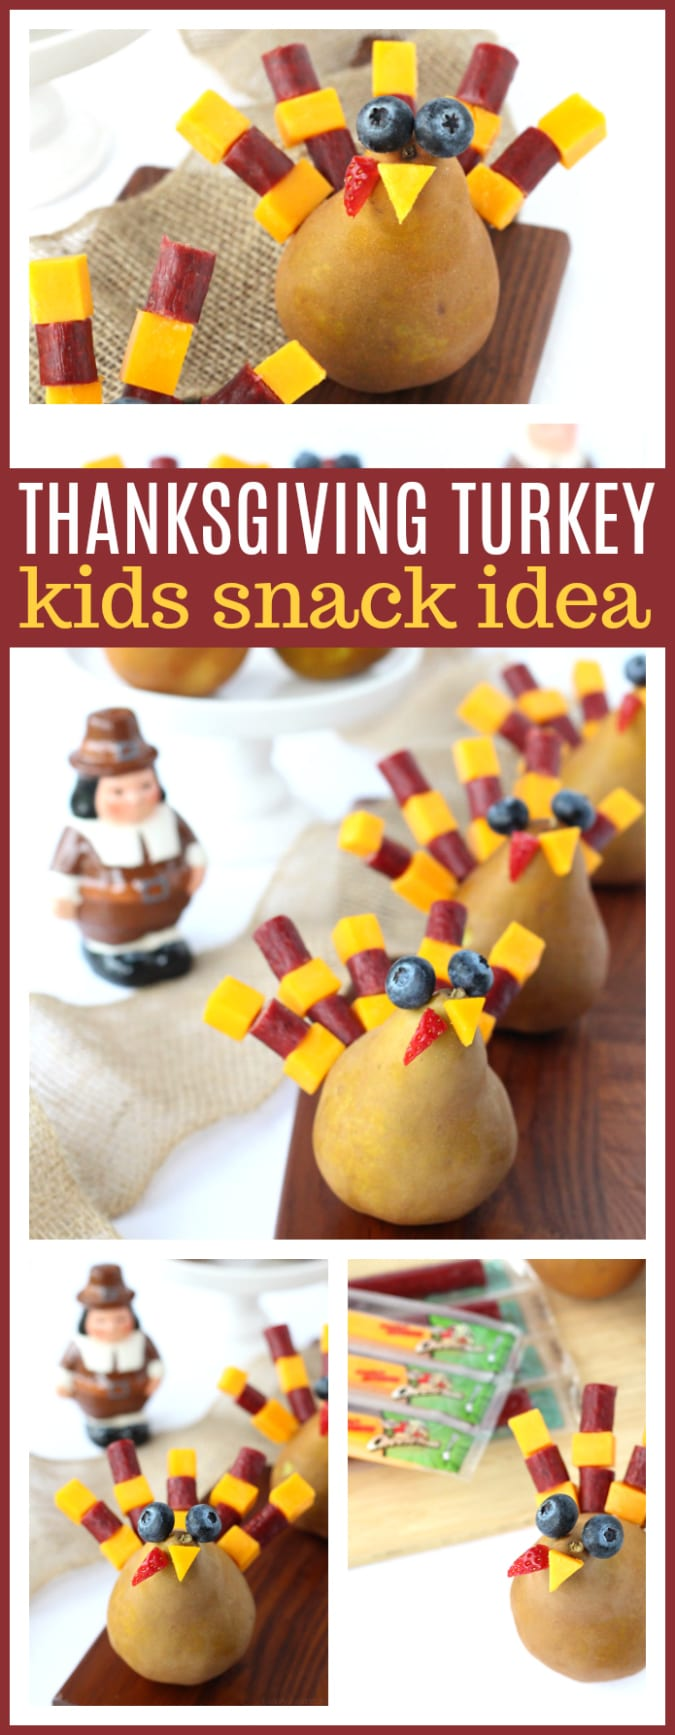 Festive Thanksgiving Snack Kids Will Gobble Up | easy & fun Thanksgiving turkey inspired kid snack idea featuring cheese sticks #Thanksgiving #Snack #party #Entertaining